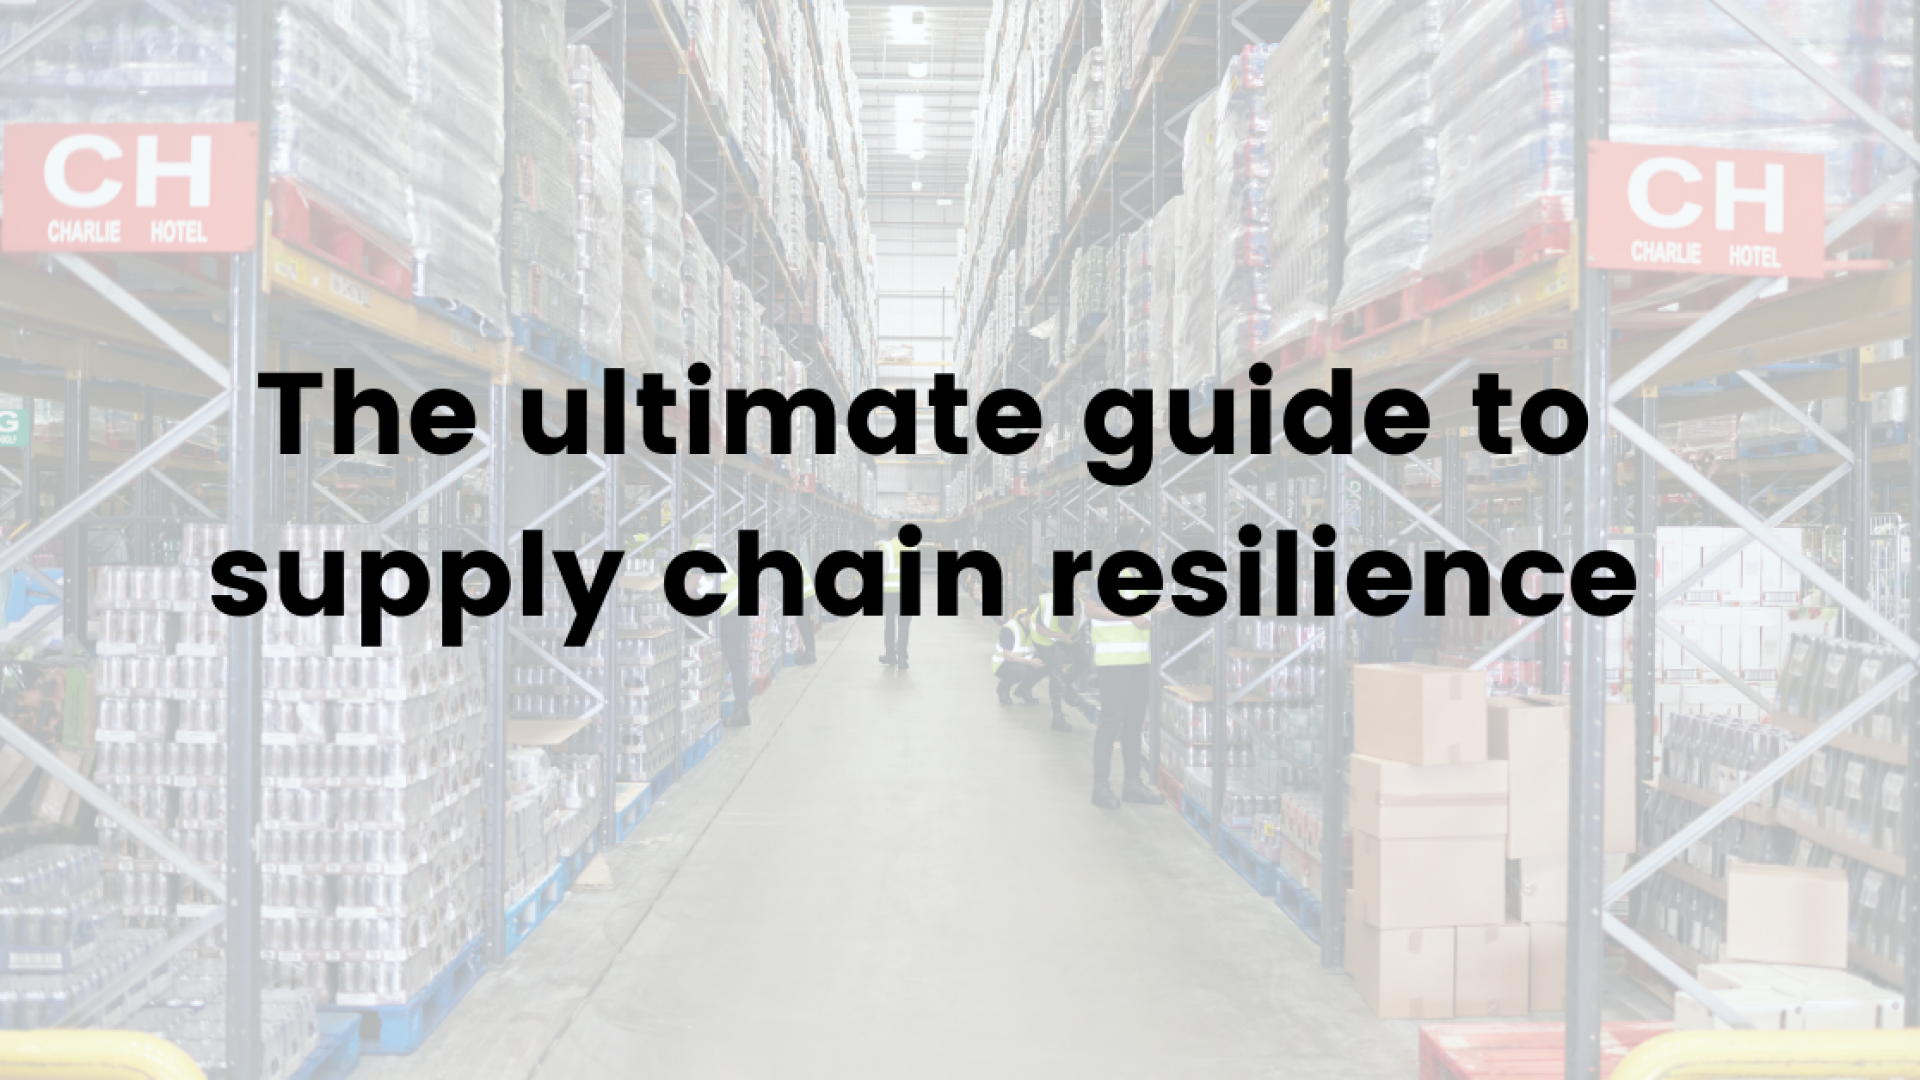 The ultimate guide to supply chain resilience small